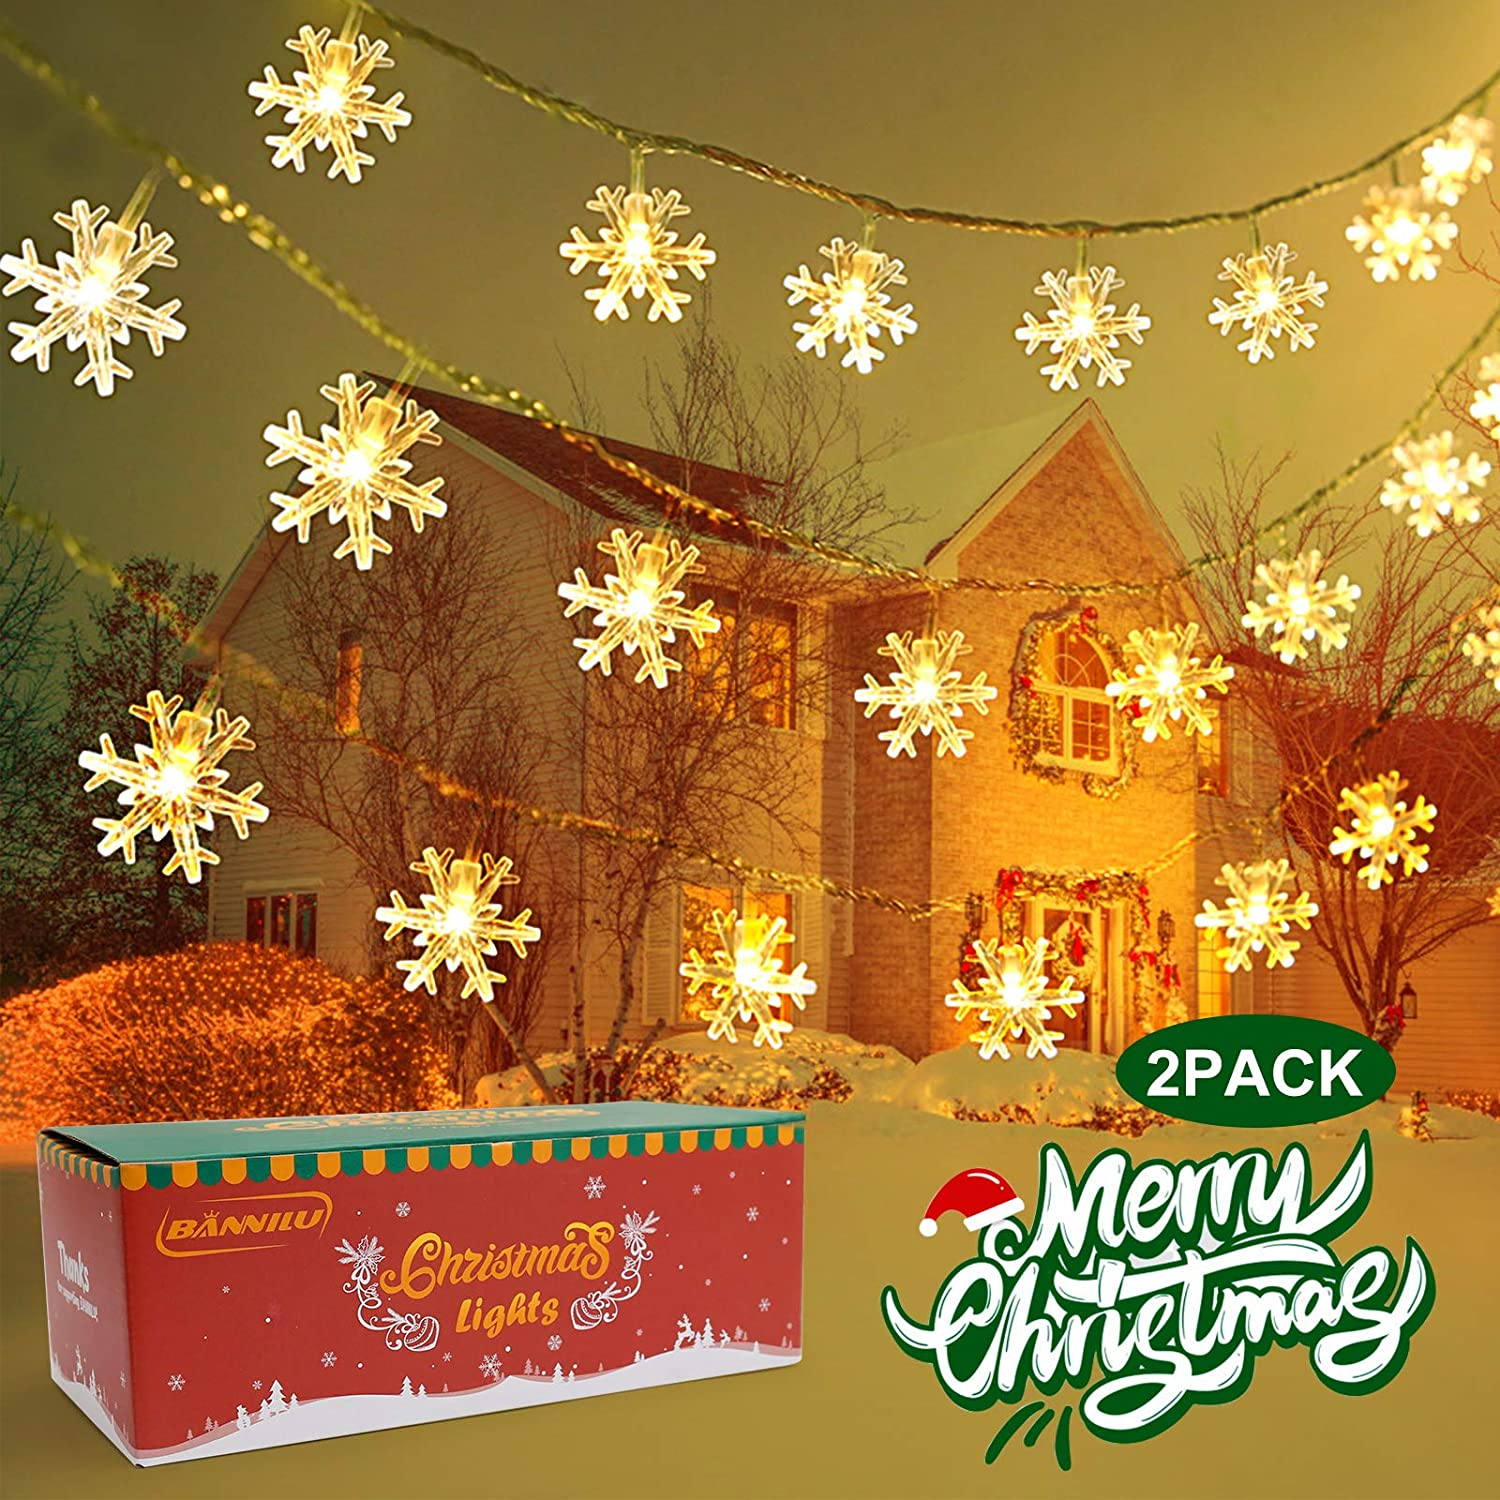 Christmas String Lights, 2 Pack Snowflake Fairy Lights 40 ft 80 LED Battery Operated Waterproof for Xmas Garden Patio Bedroom Party Decor Indoor Outdoor Celebration Lighting (Snowflakes-Warm White)